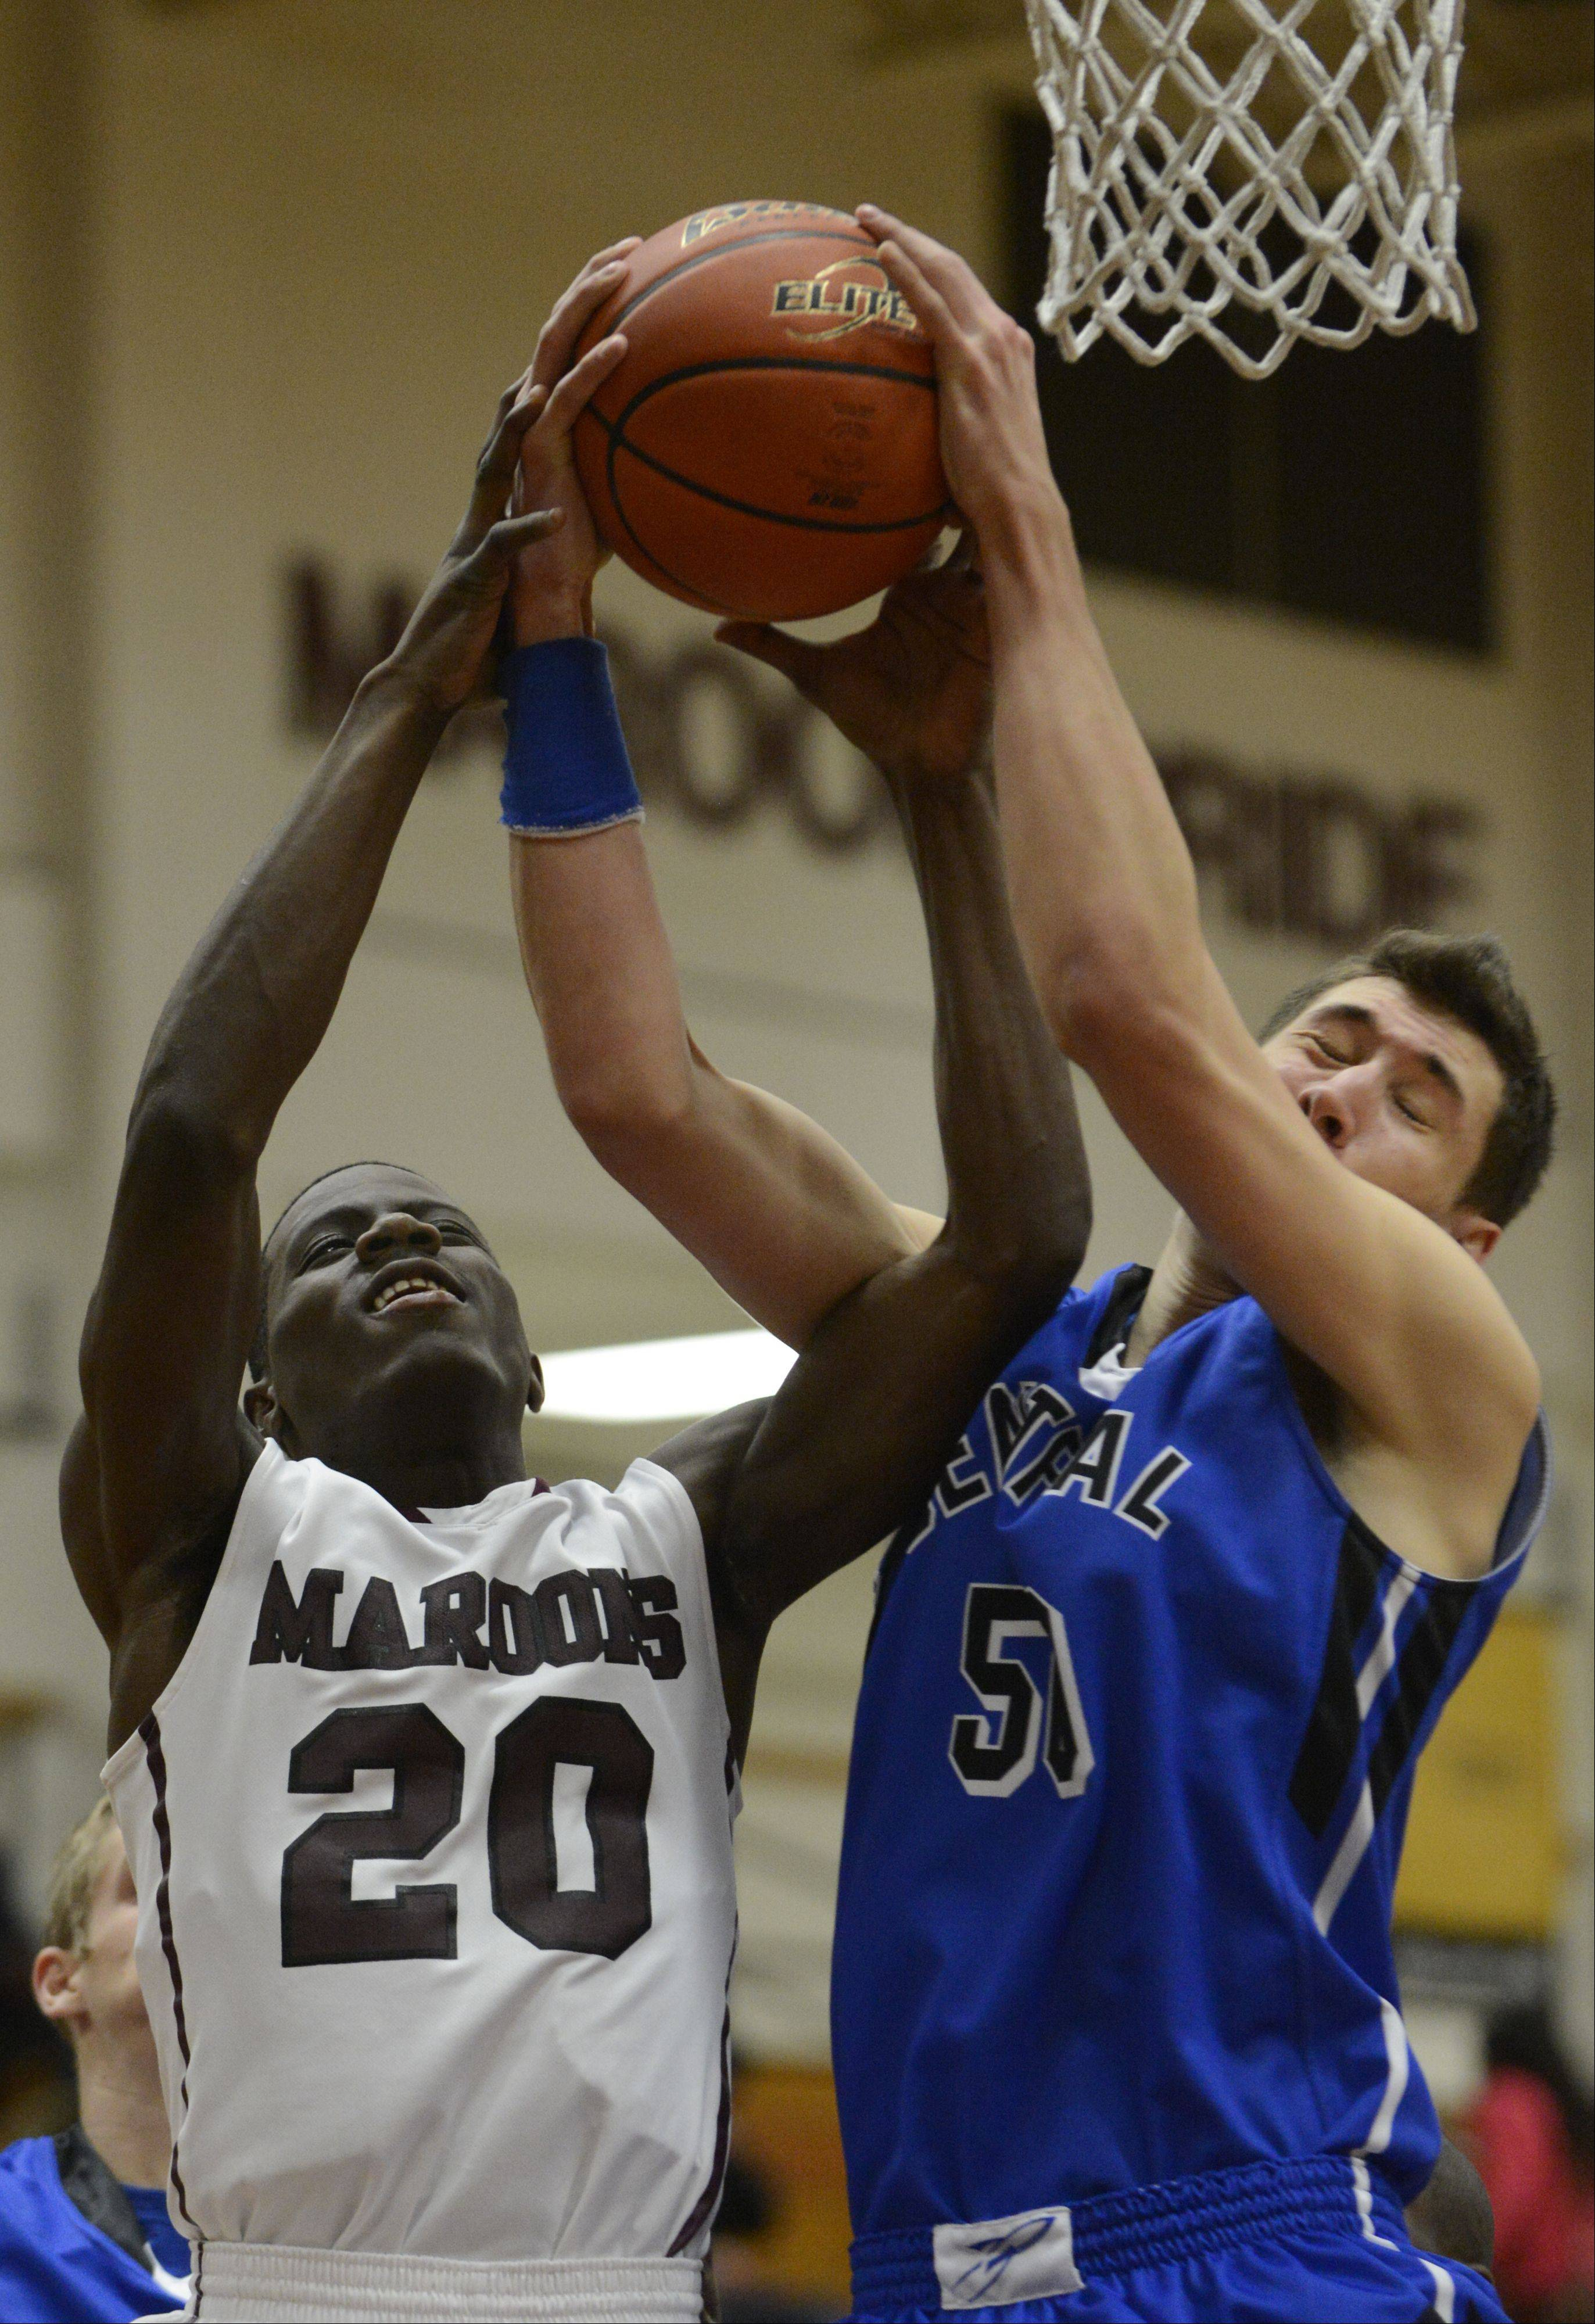 Images from the Burlington Central vs. Elgin boys basketball game Tuesday, December 10, 2013.